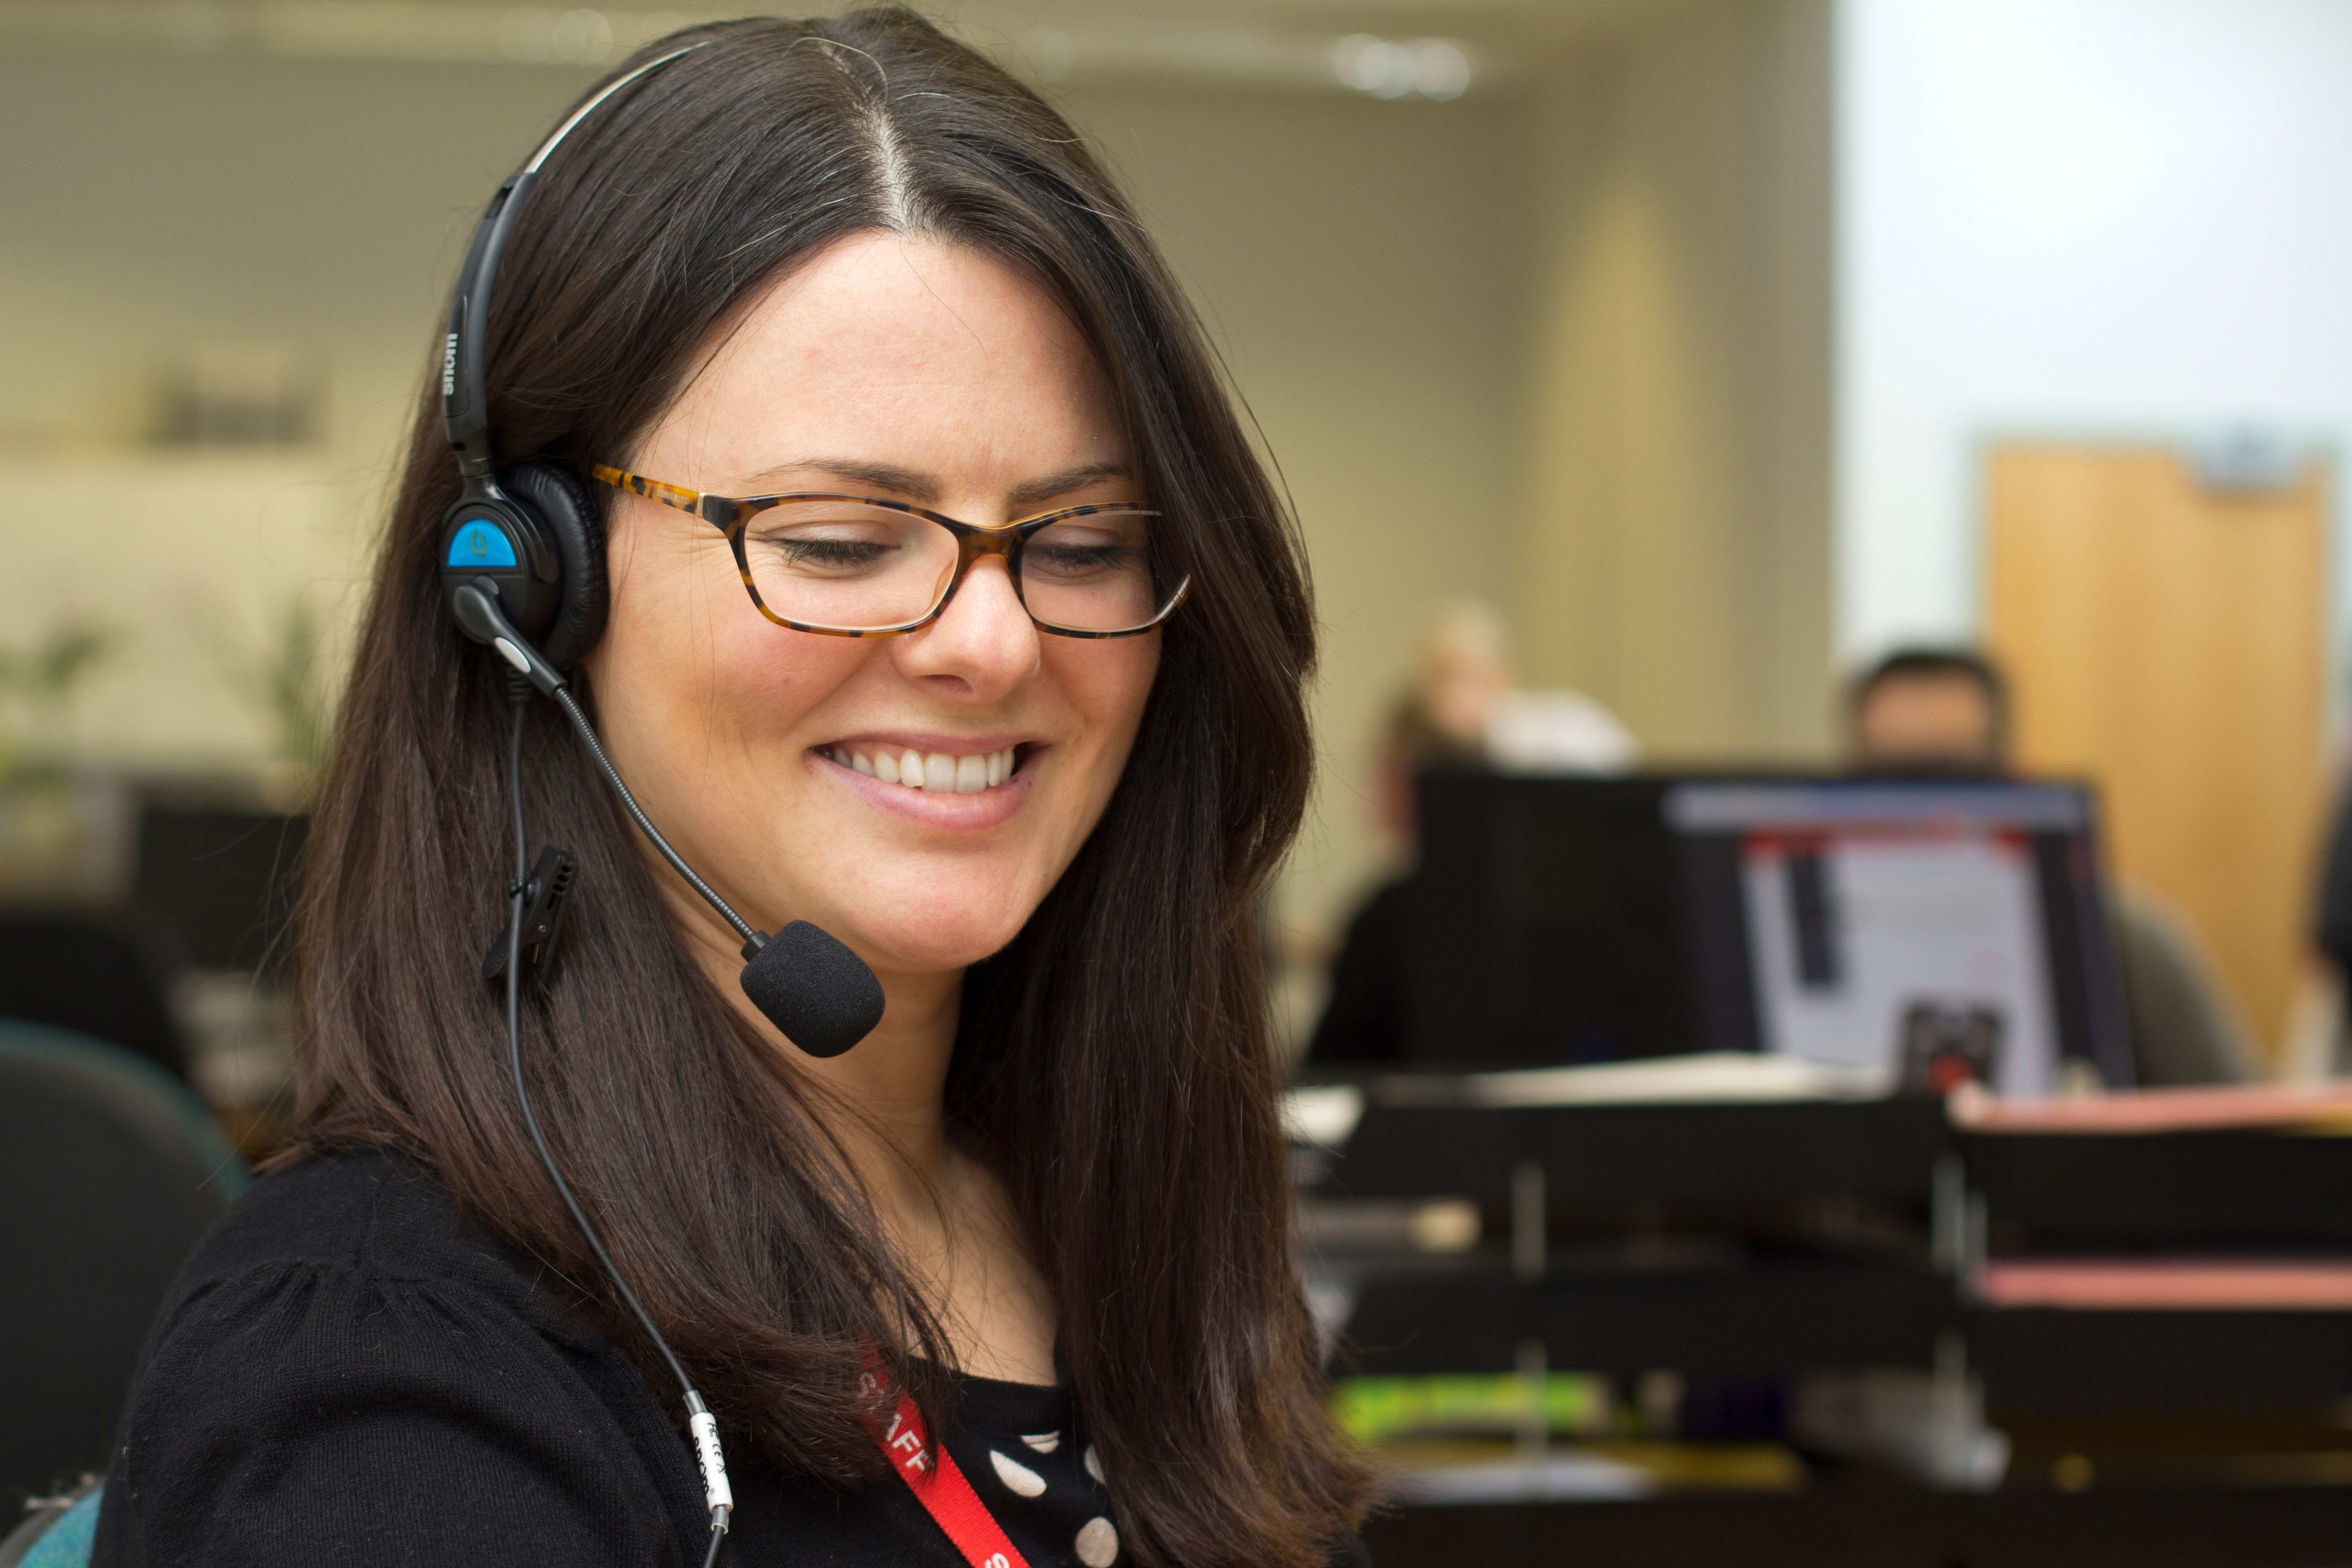 A woman smiling whilst taking a call on a headset